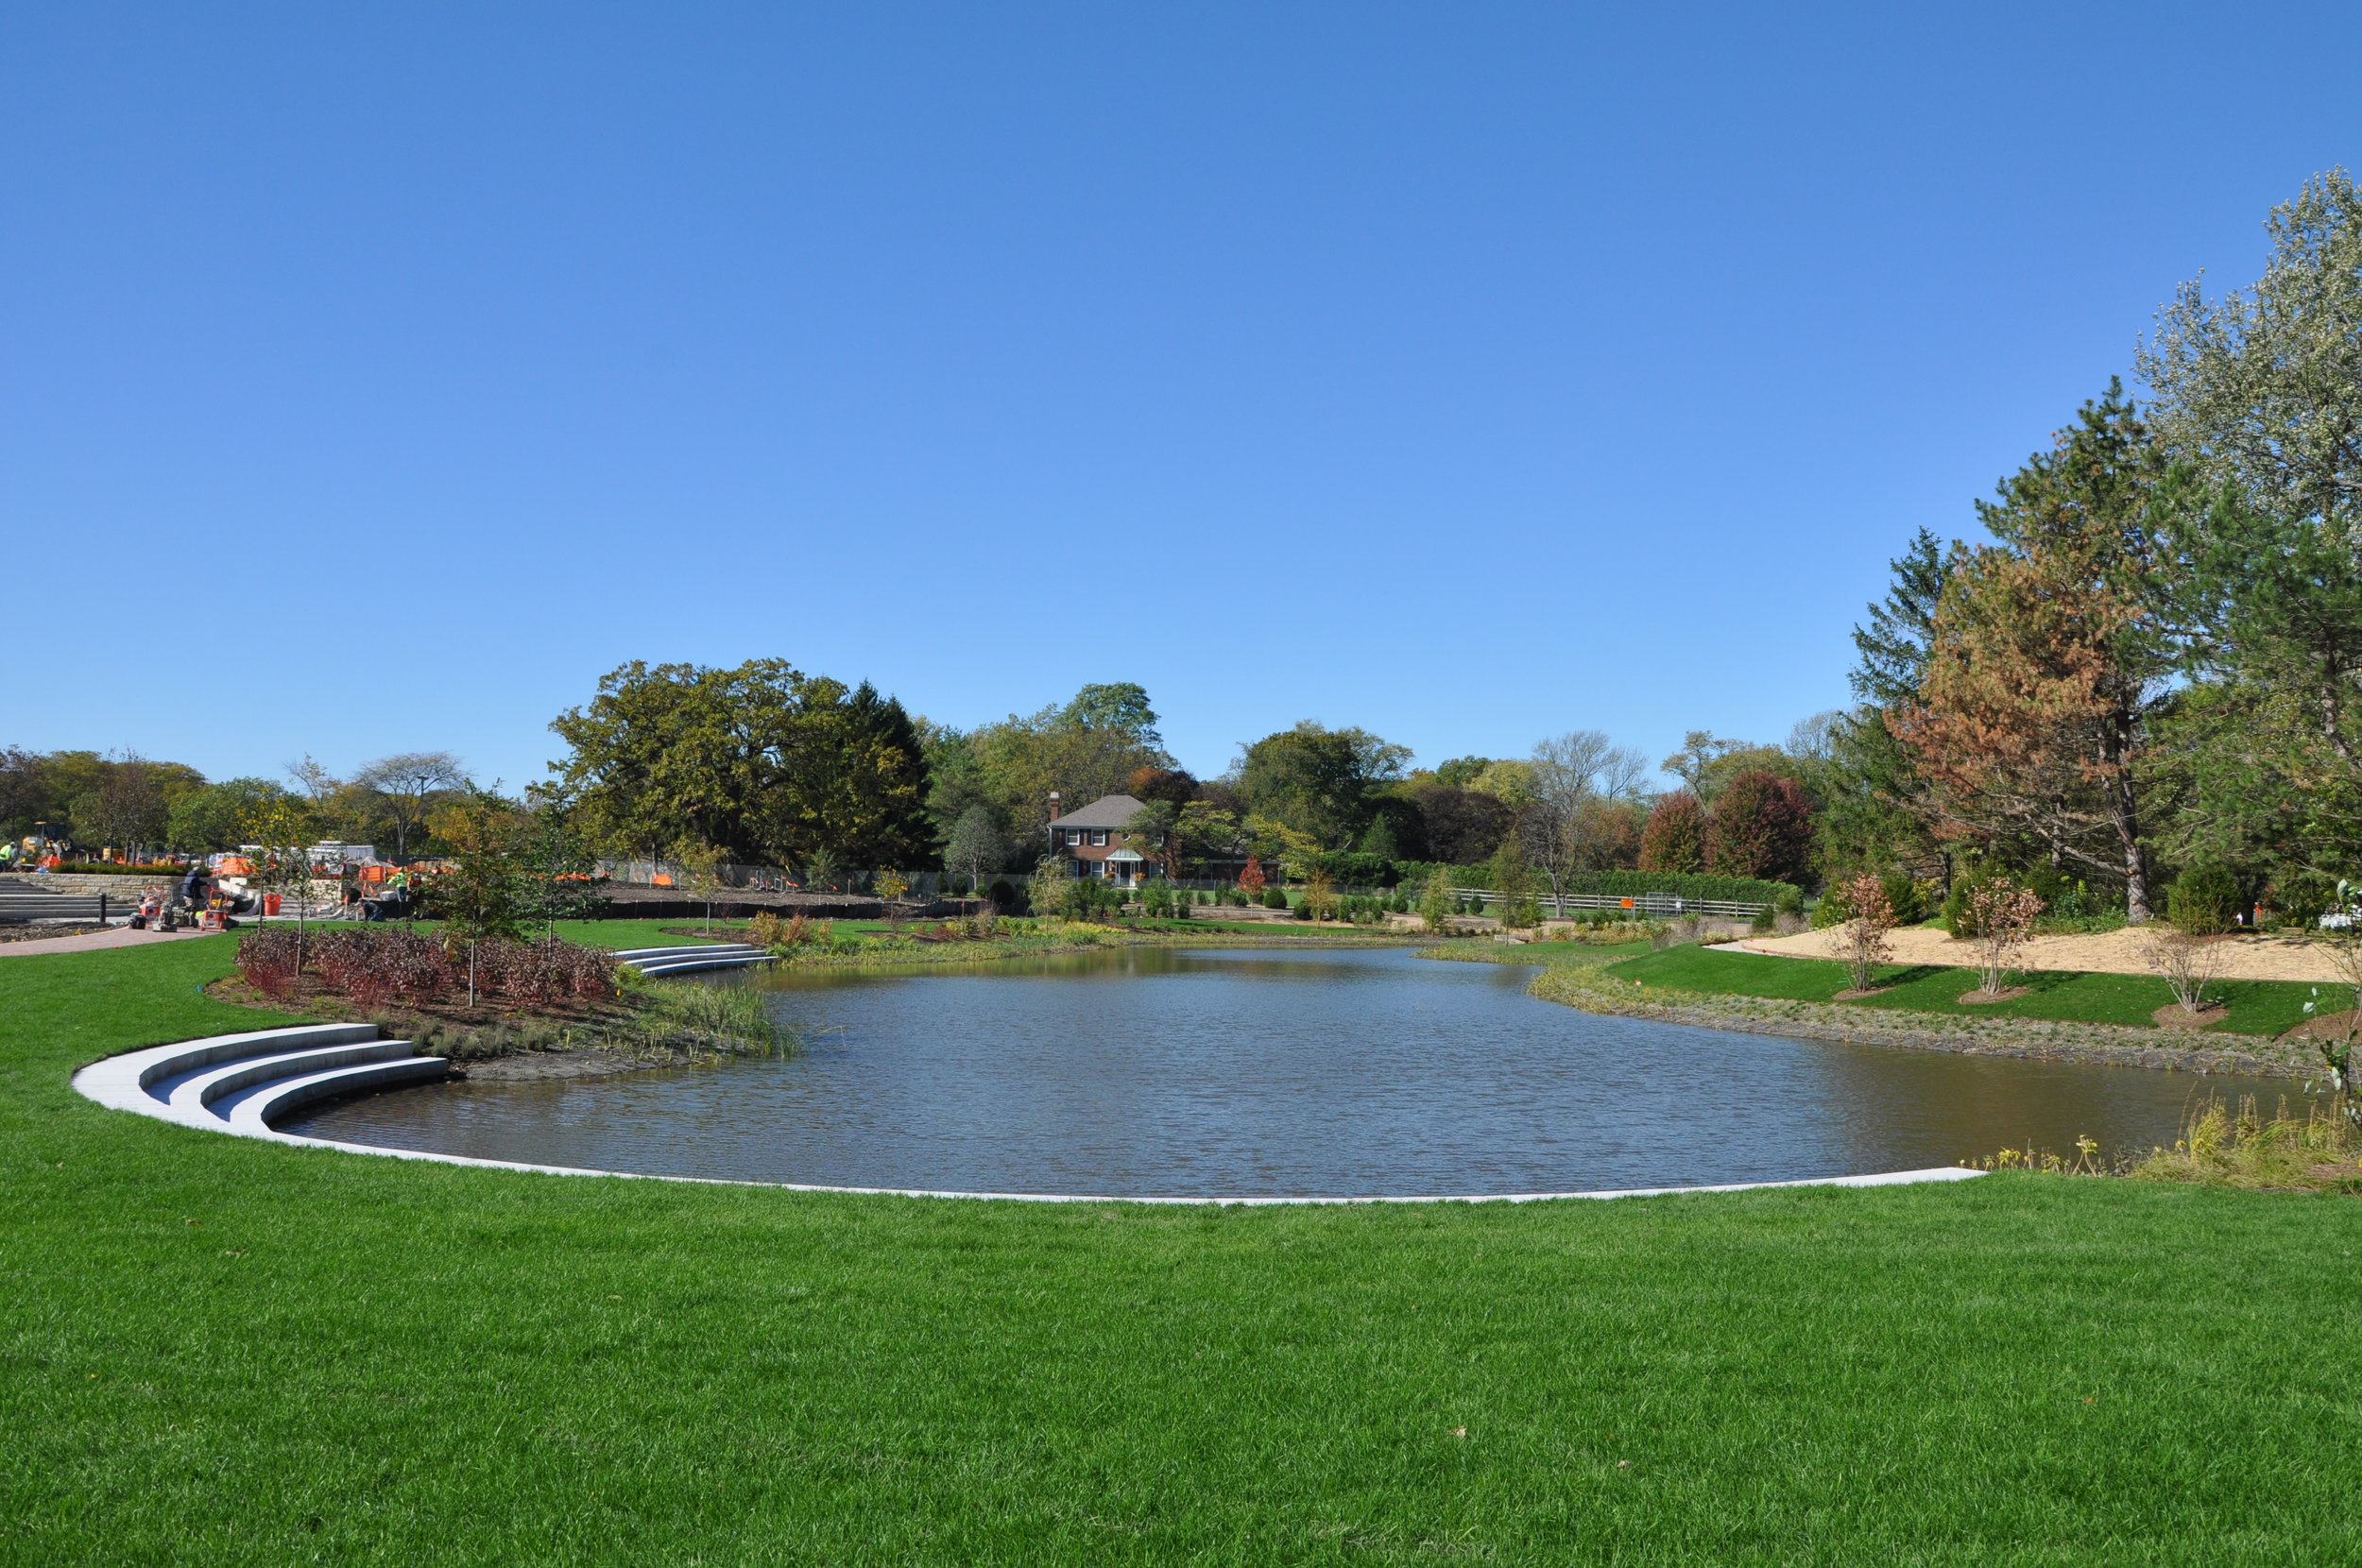 Cantigny's redesigned pond garden now includes access to the water's edge and a walking bridge (photo courtesy of Jeff Reiter/Cantigny)